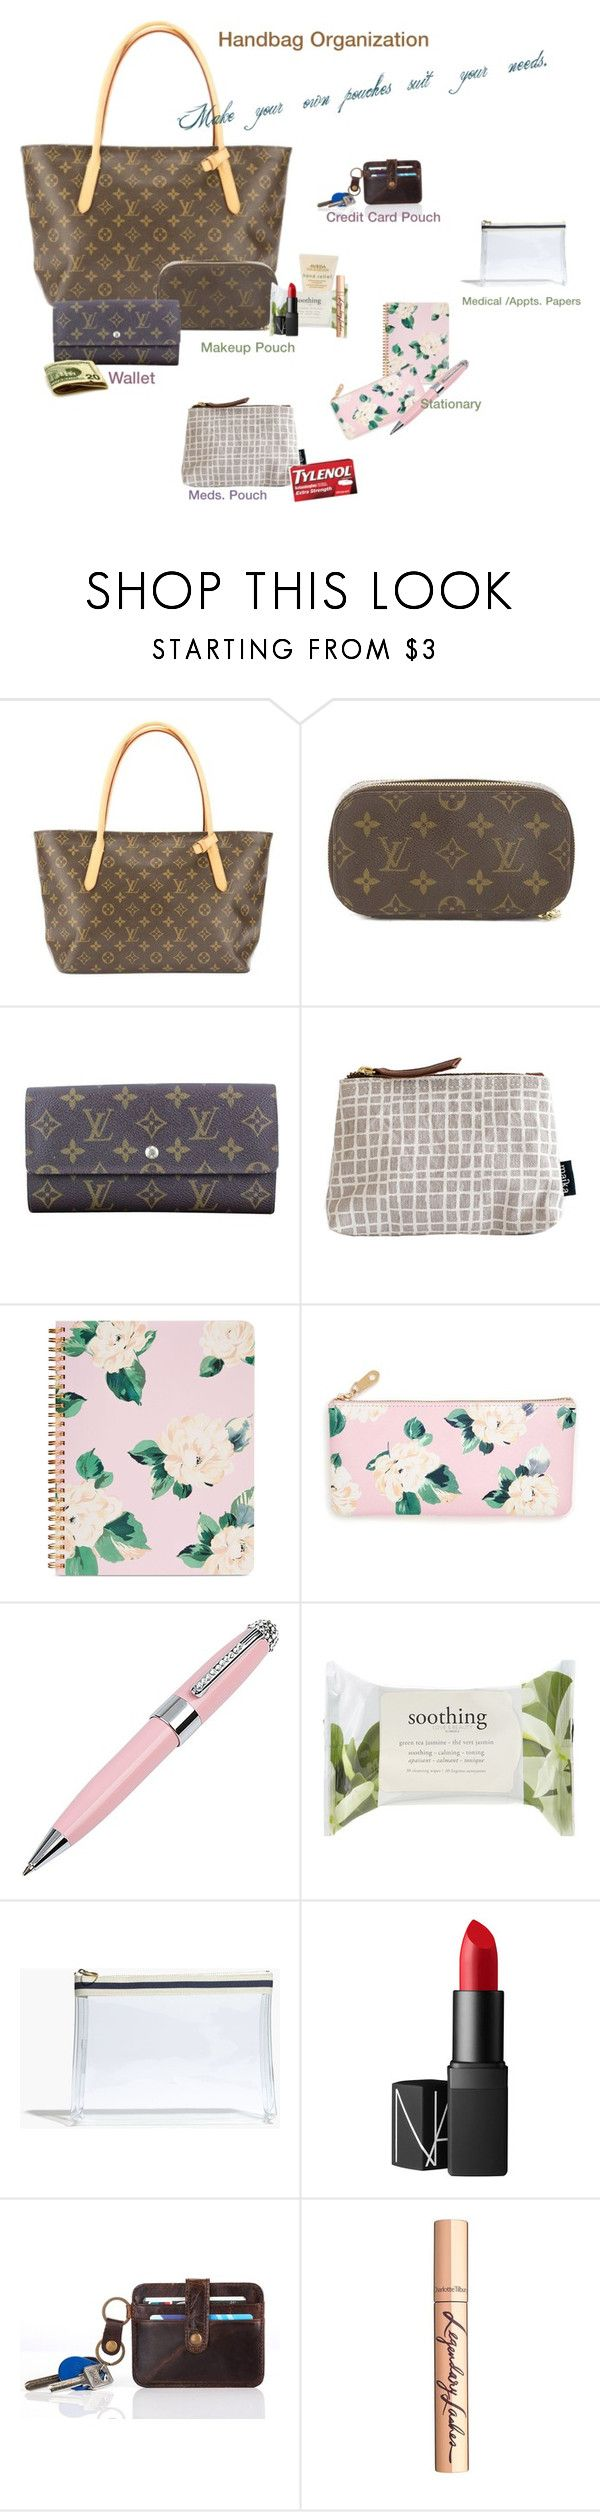 """""""Handbag Organization"""" by mom2017 ❤ liked on Polyvore featuring Louis Vuitton, Maika, ban.do, ICE London, Forever 21, Madewell, NARS Cosmetics and Charlotte Tilbury"""